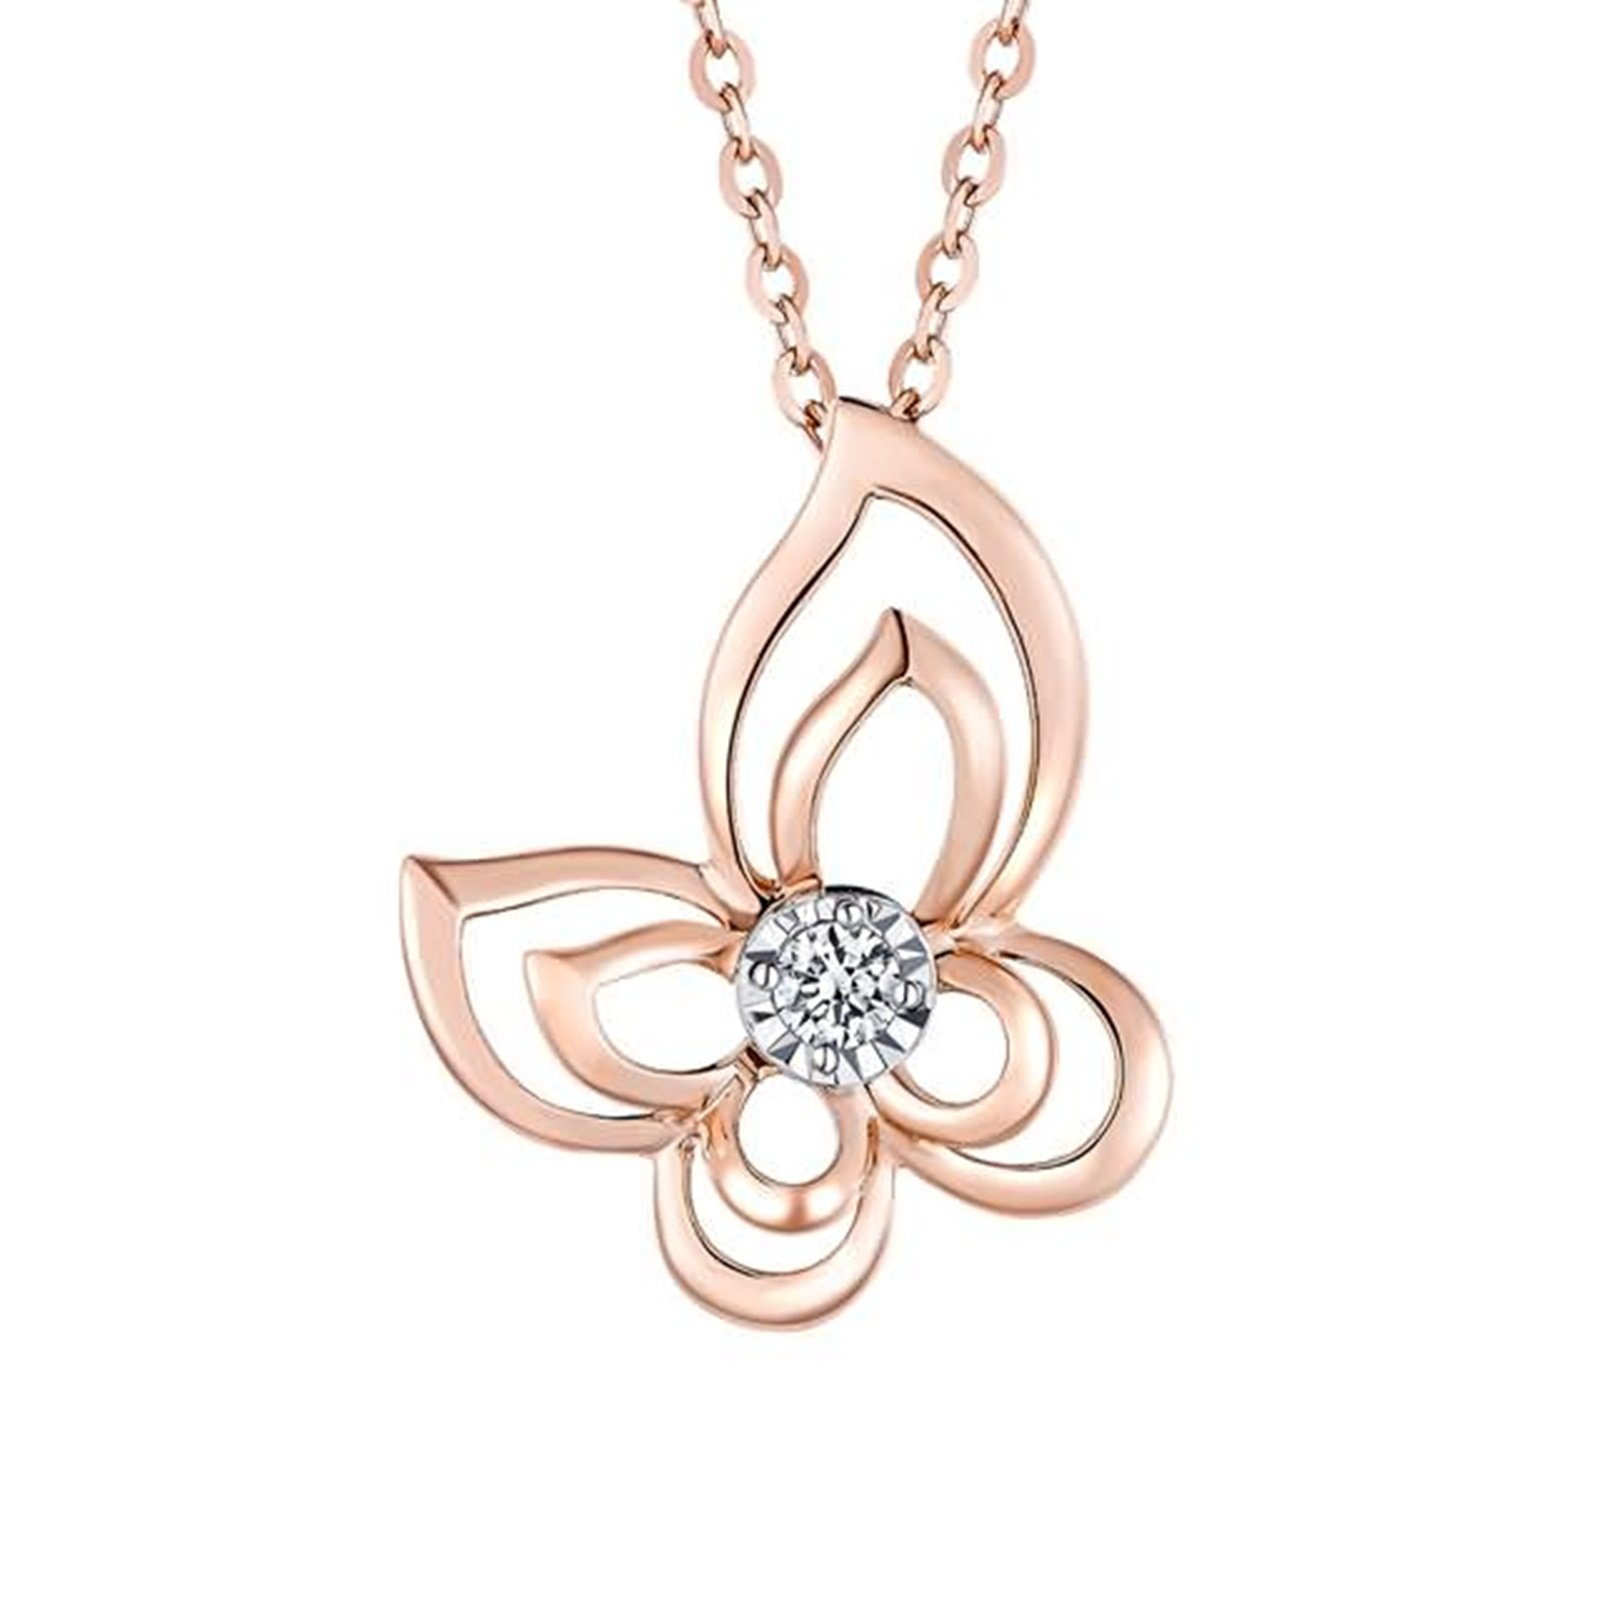 Adisaer 18k(750) Rose Gold Women Necklace Hollow Butterfly Pendant Round Diamond Wedding Necklace